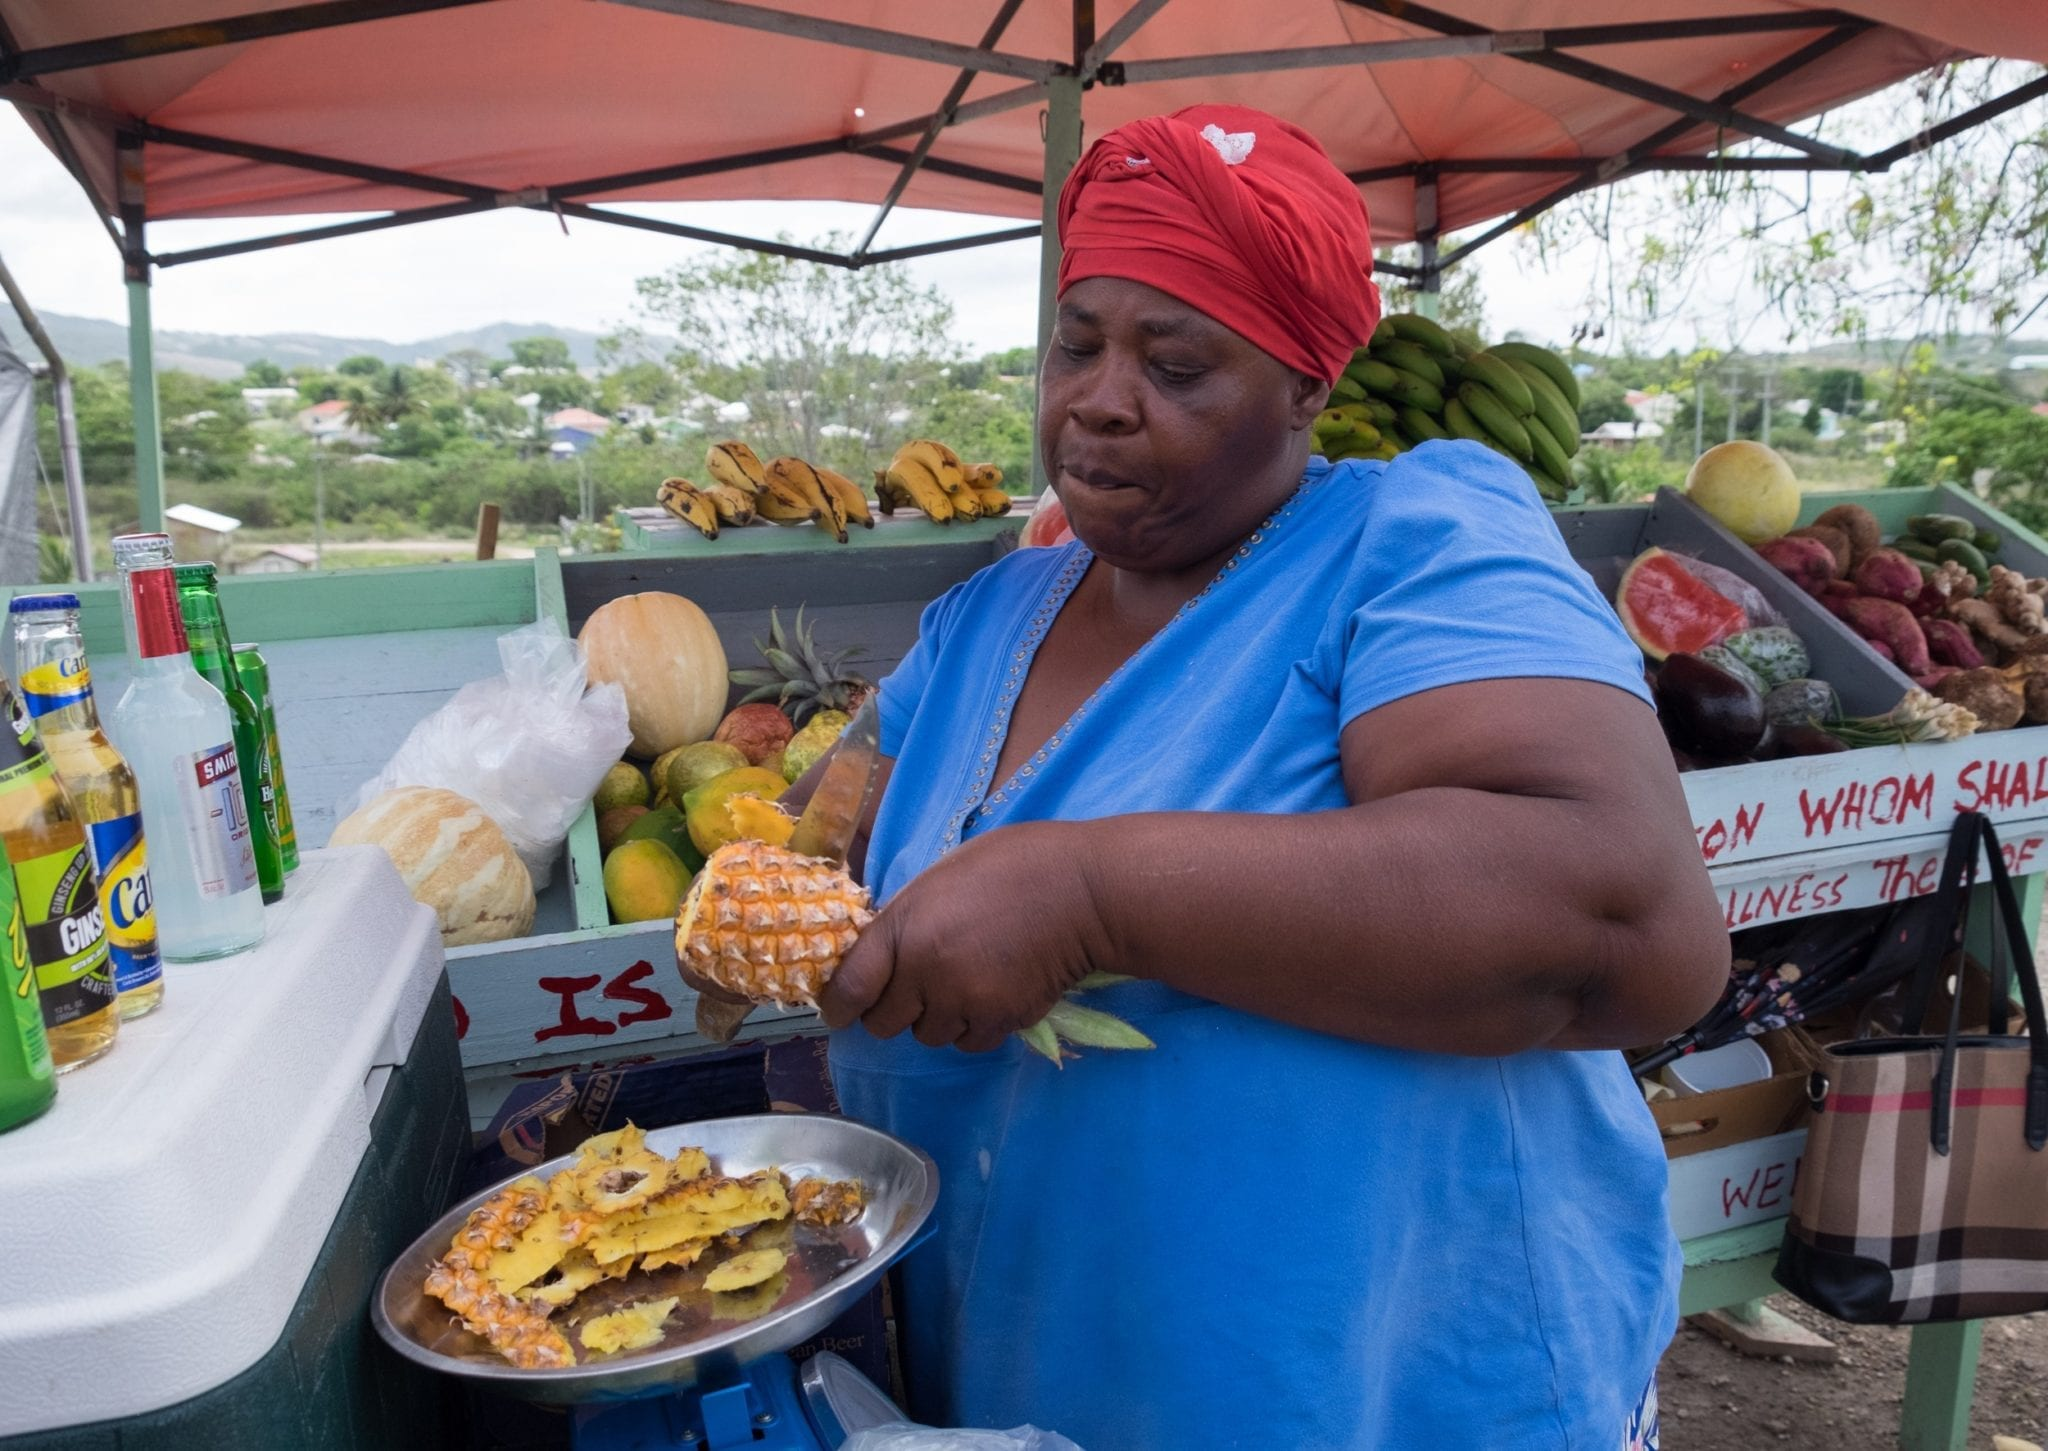 A woman in a red bandana slices a pineapple into a plastic bag in Antigua.